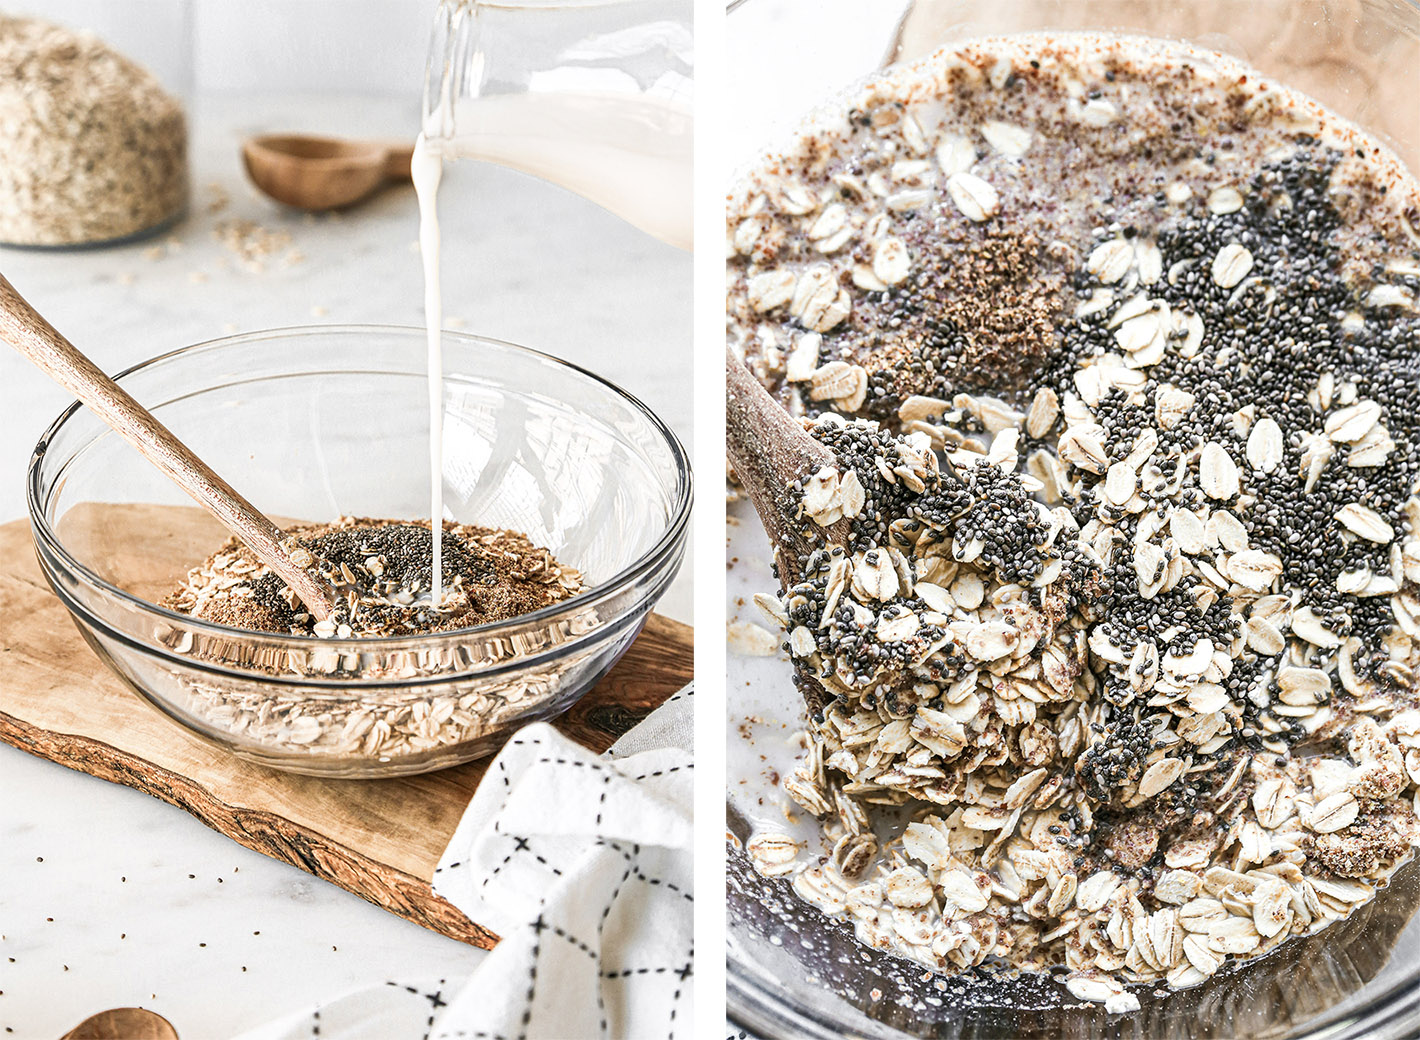 Superfood Overnight Oats Ingredients | Vegan and Gluten-Free